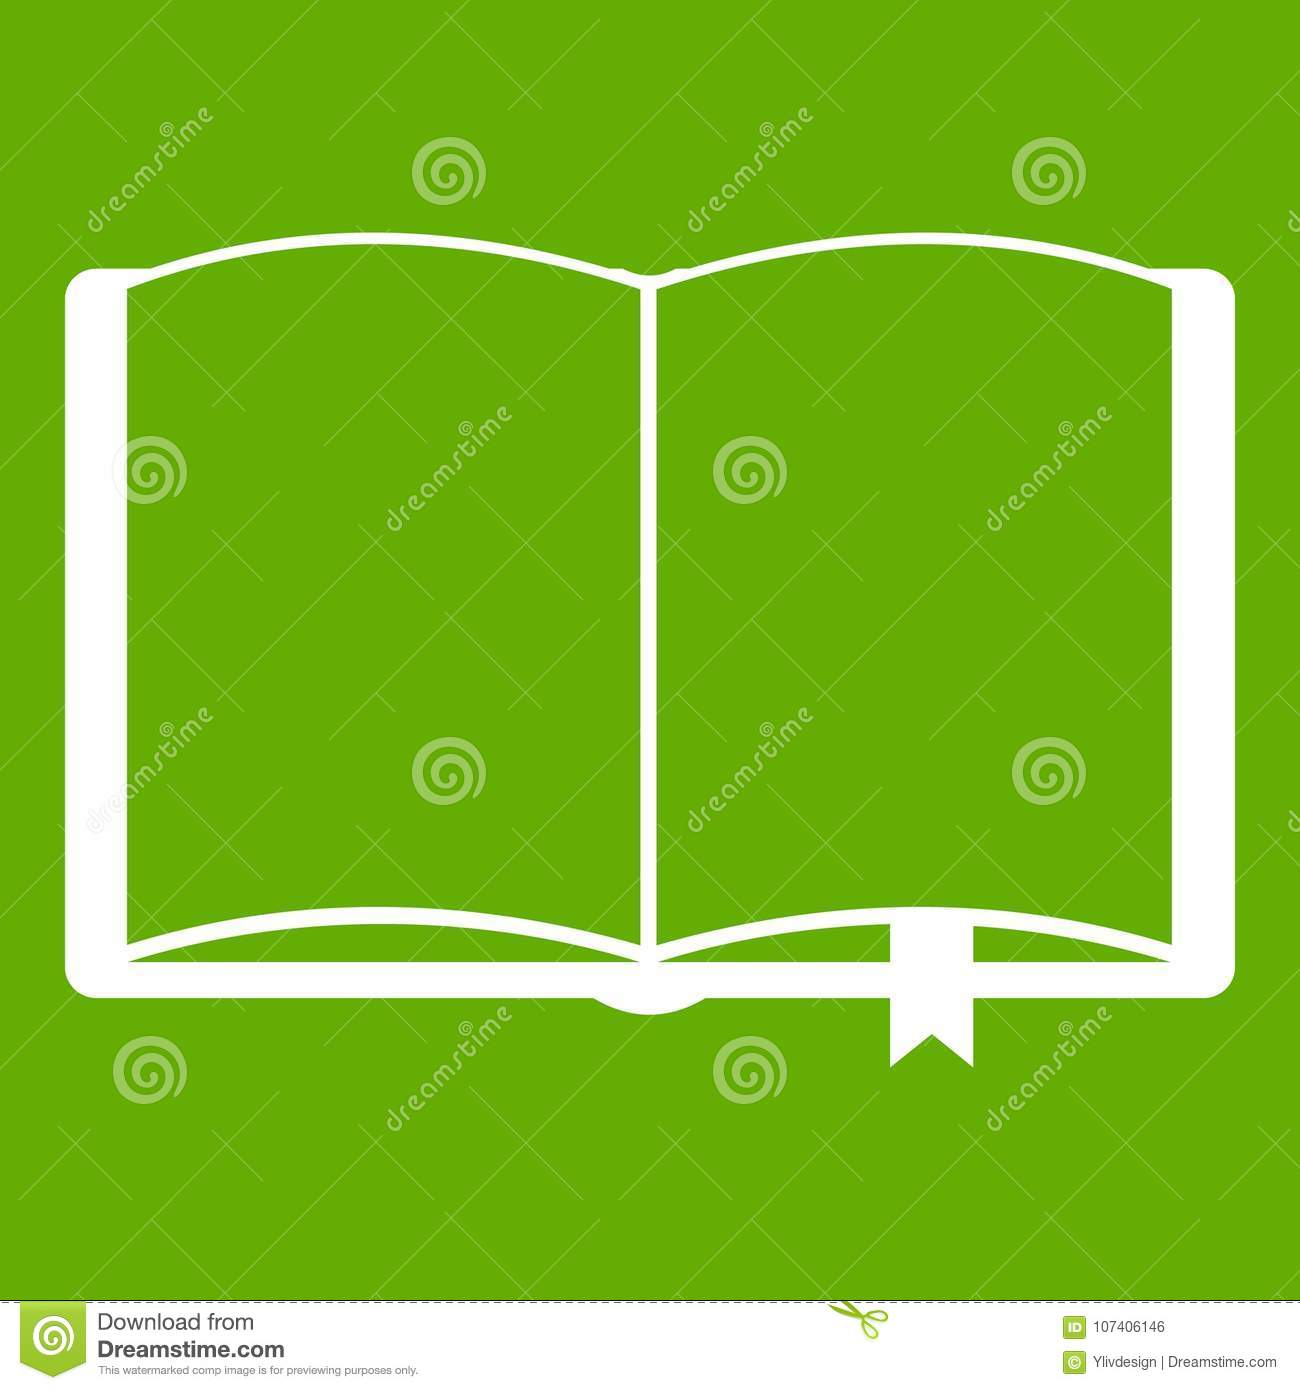 open book with bookmark icon green stock vector - illustration of